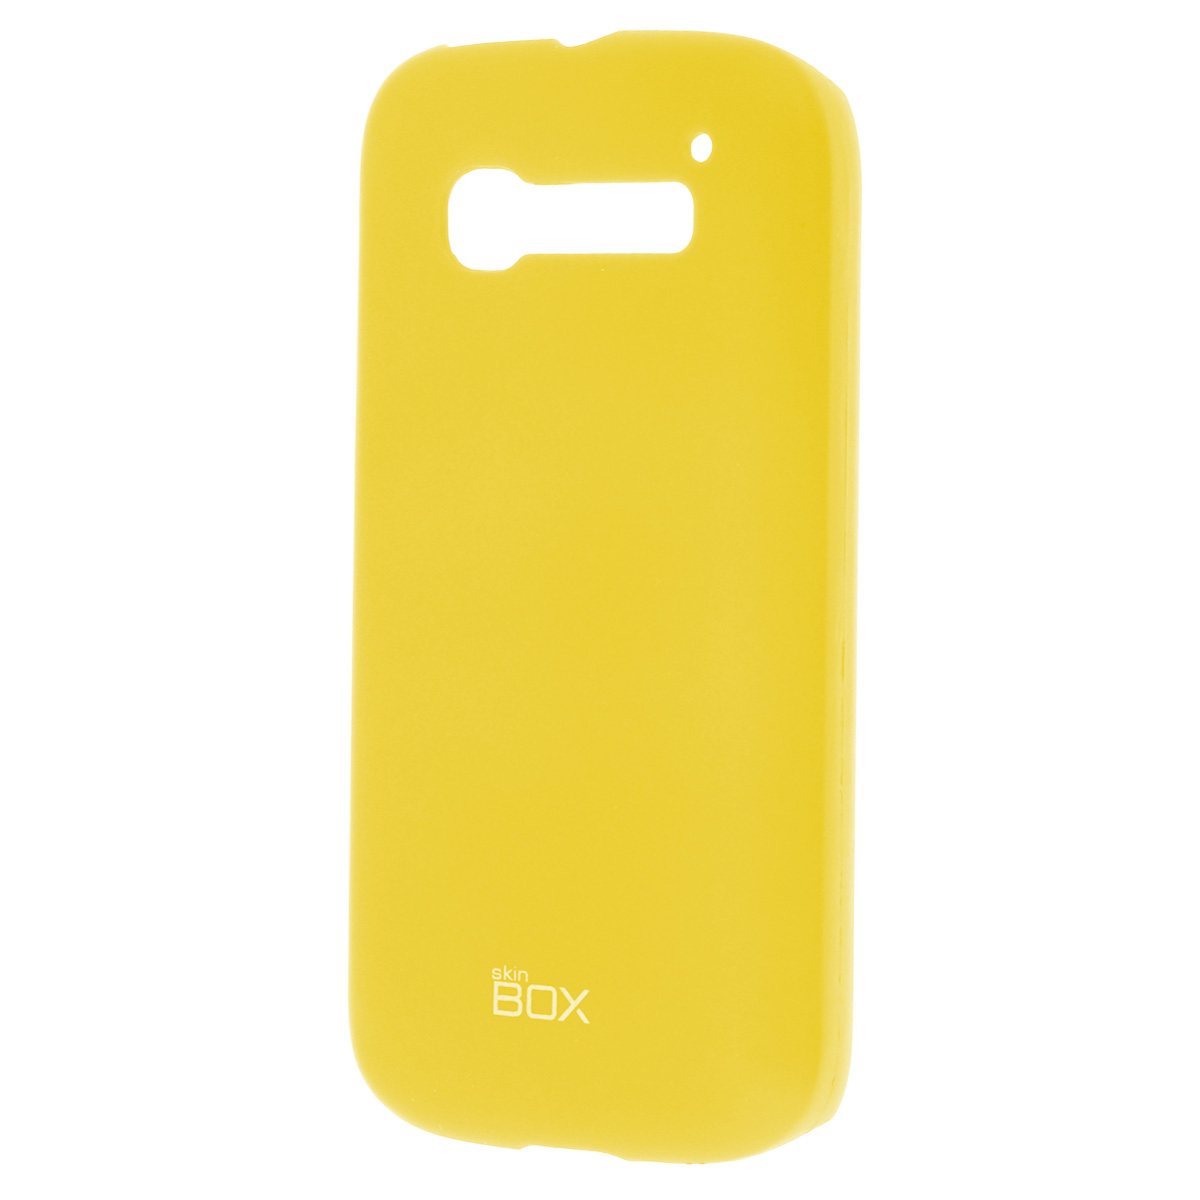 все цены на  Skinbox Shield 4People чехол для Alcatel 5036D С5, Yellow  онлайн